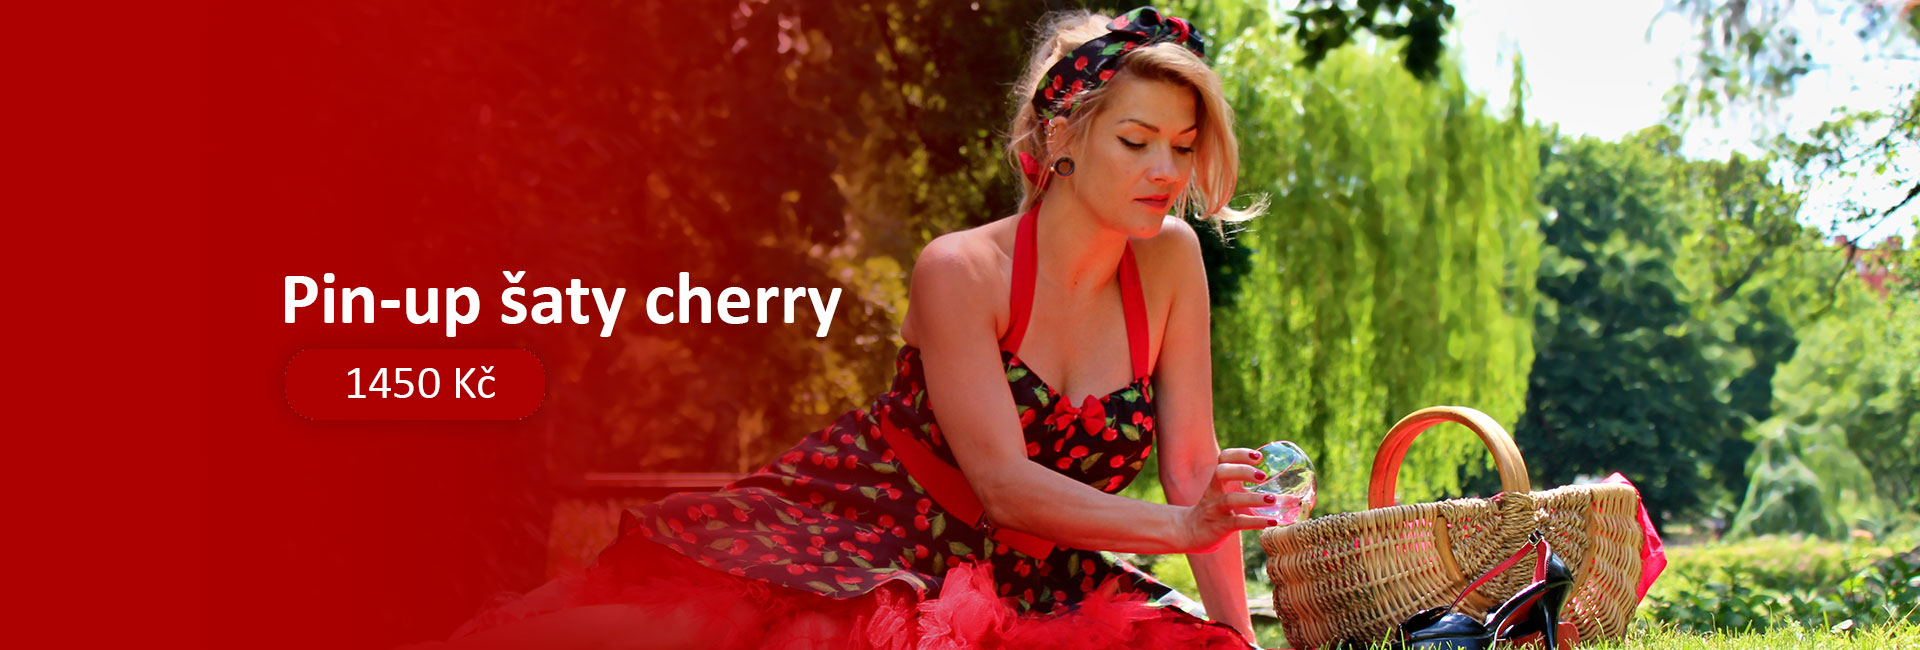 Pin-up šaty cherry